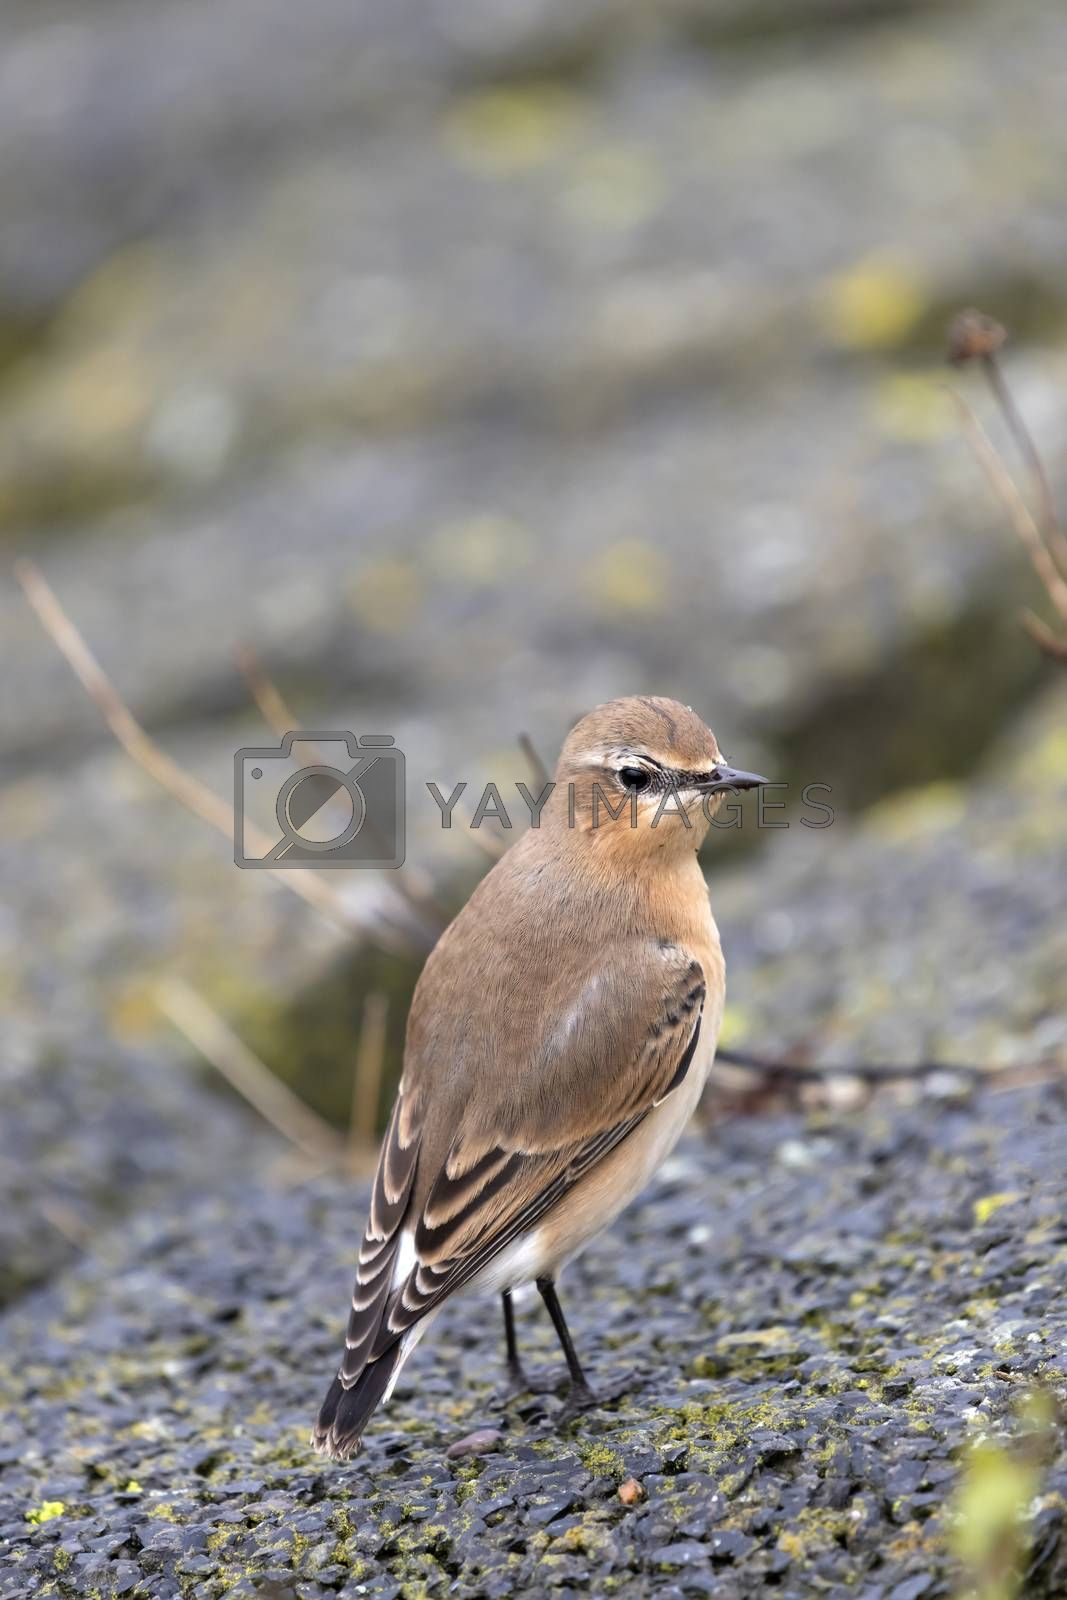 Small perky songbird the Wheatear Oenanthe oenanthe on the island of Terschelling in the northern Netherlands